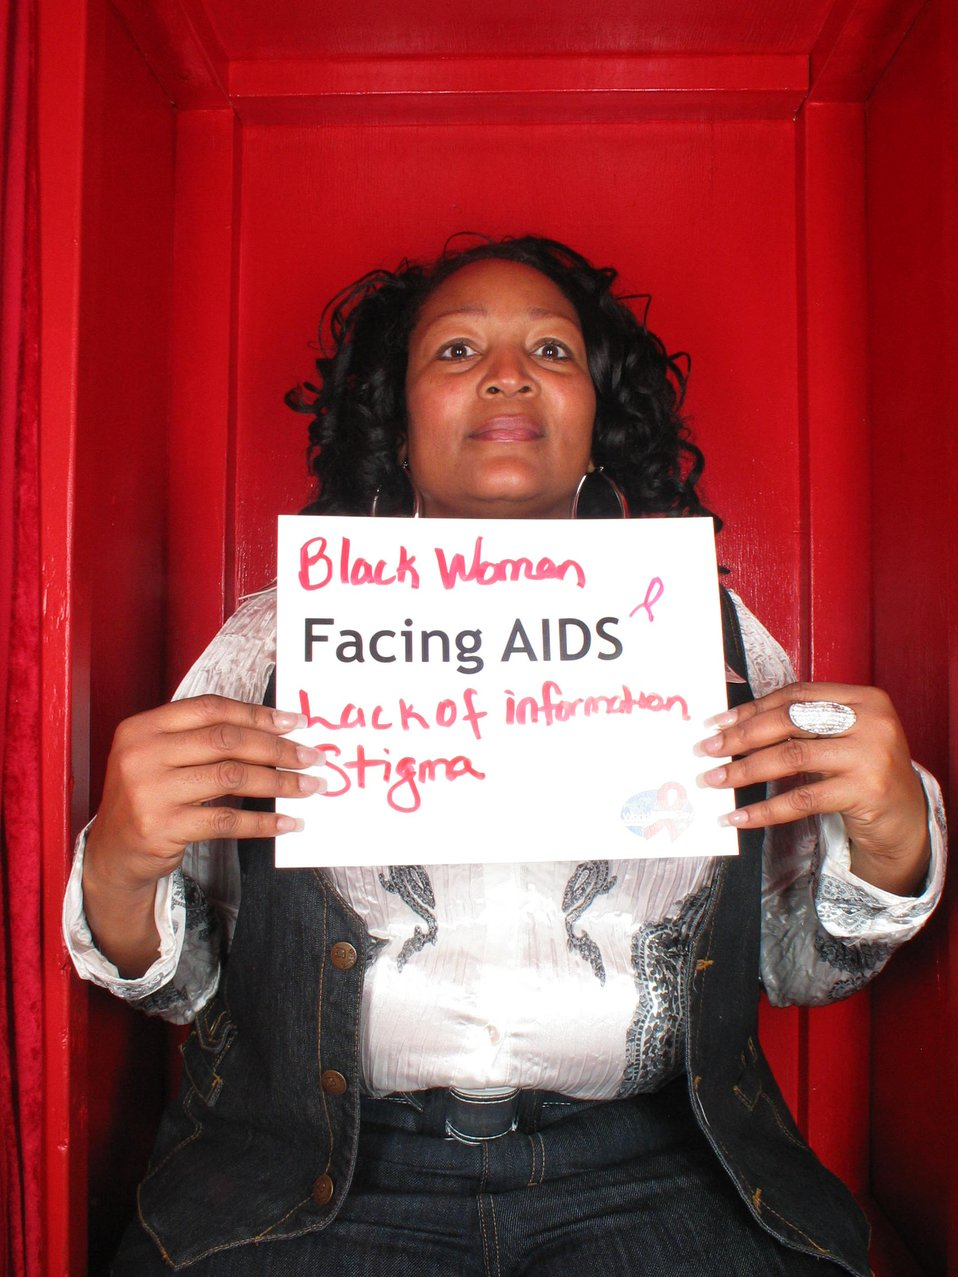 Black women Facing AIDS lack information. Stigma